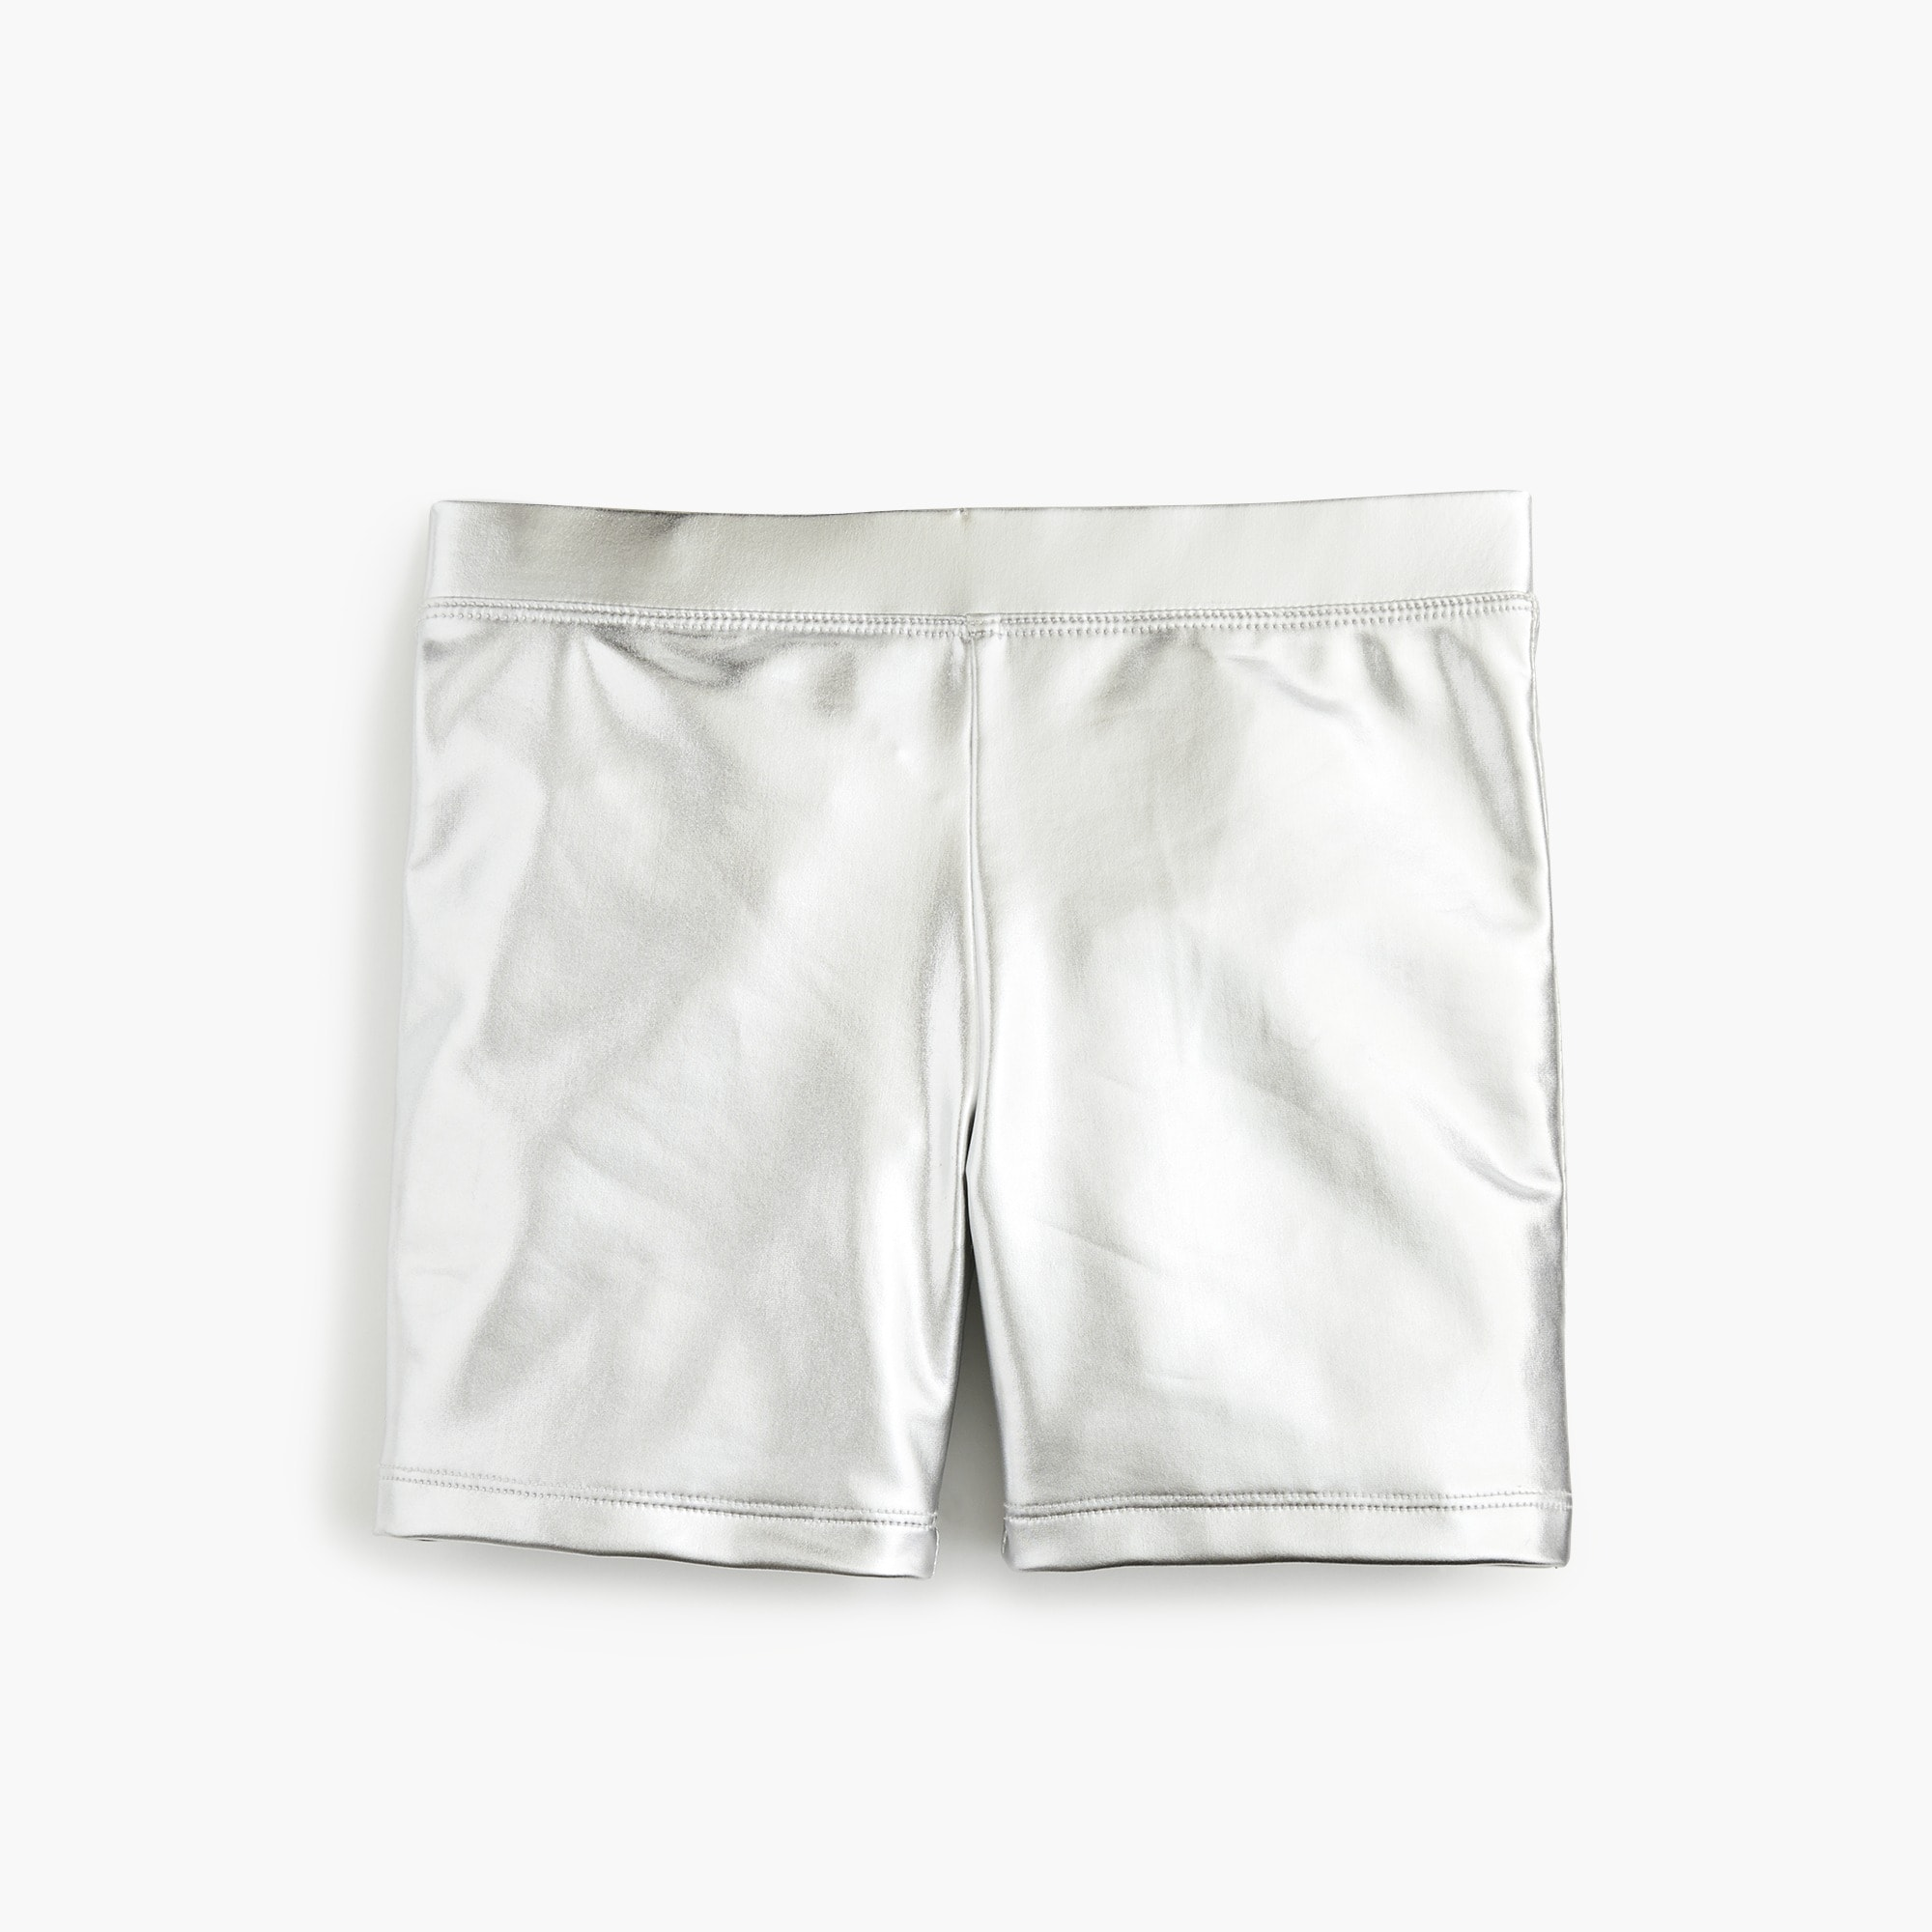 Girls' bike short in metallic girl new arrivals c